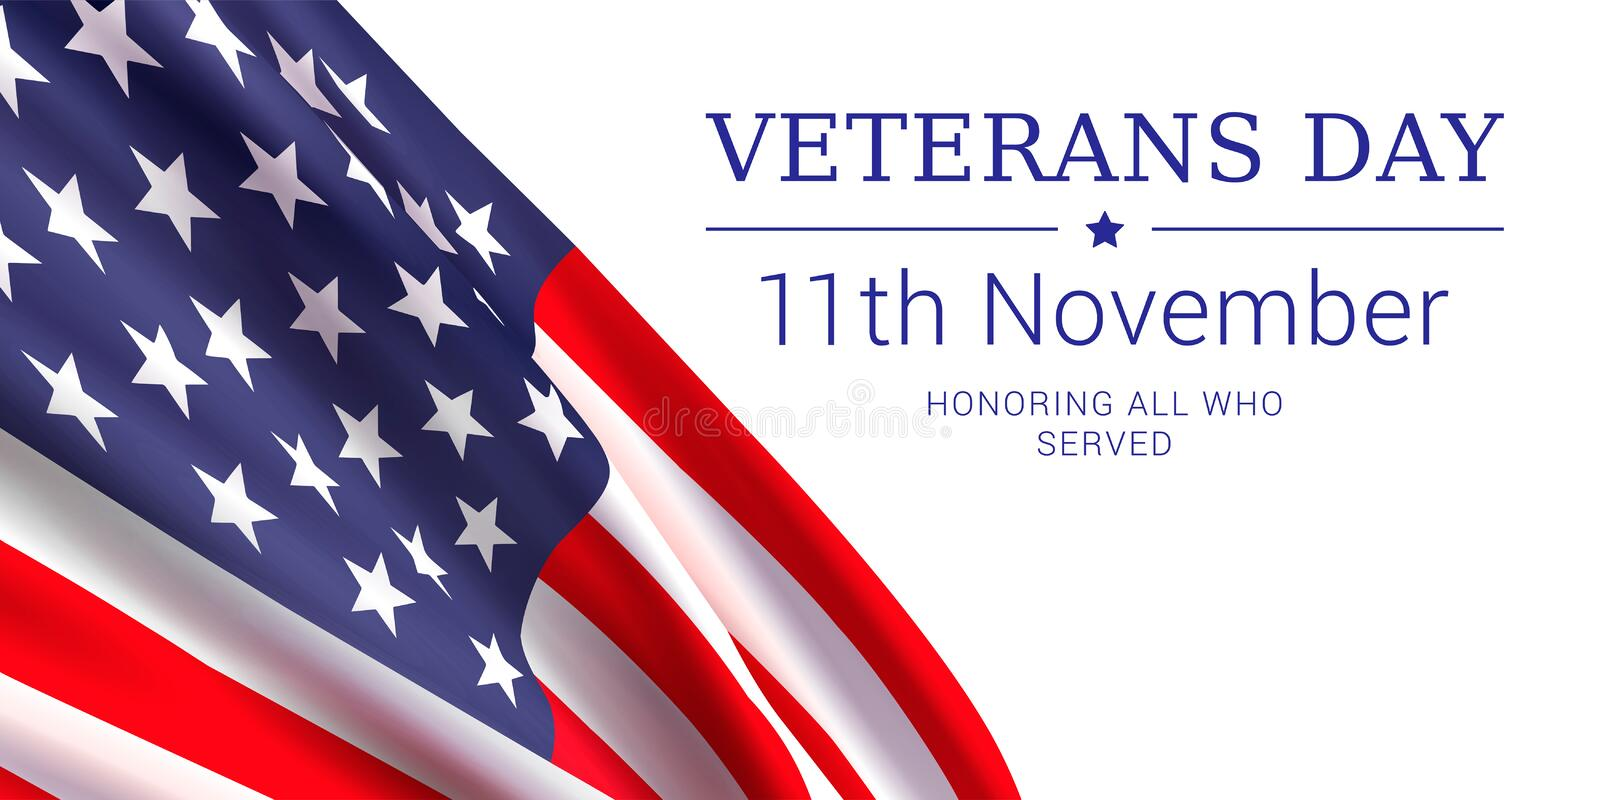 11th november - Veterans Day. Honoring all who served. Vector banner design template with american flag and text on white background royalty free illustration